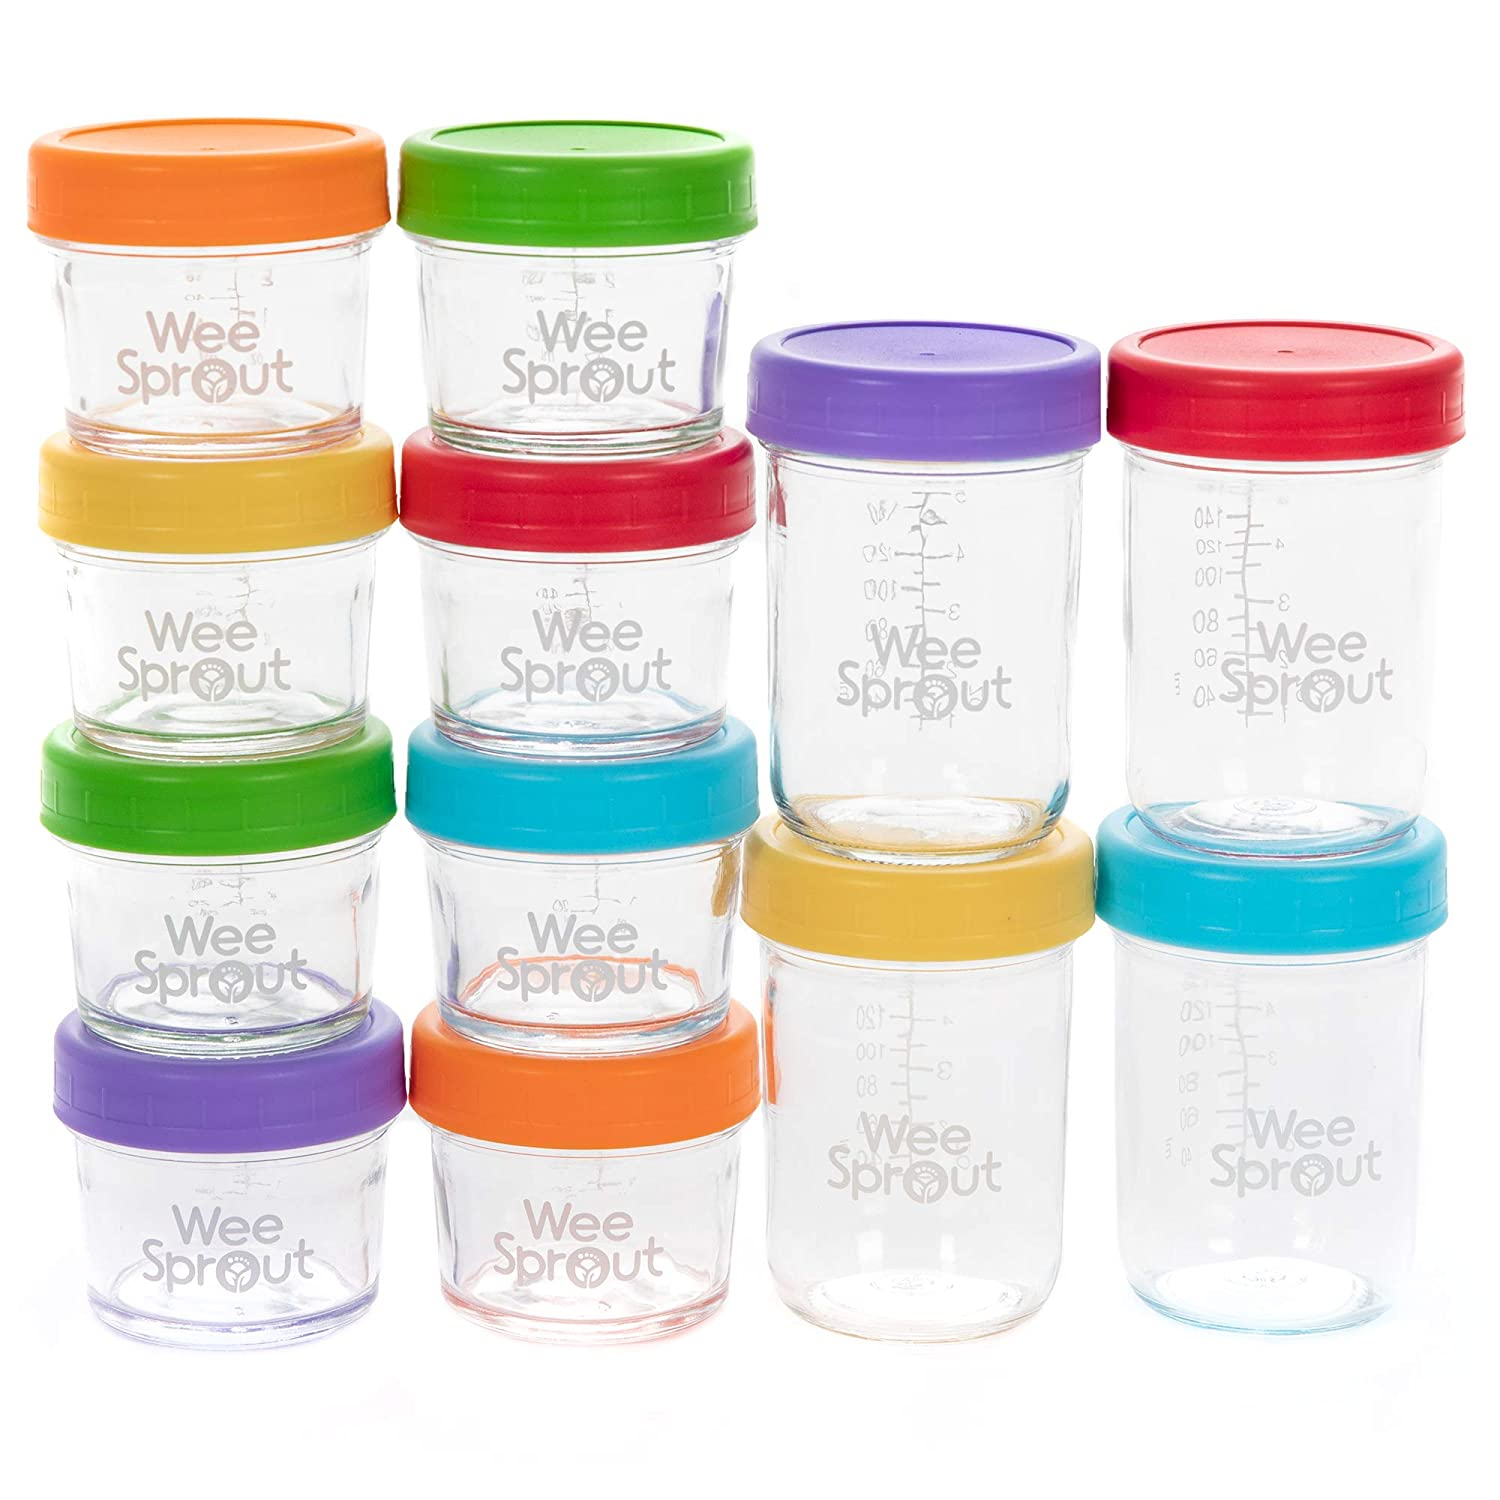 WeeSprout Glass Baby Food Storage Jars - 12 Set   4 oz & 8 oz Baby Food Jars with Lids   Freezer Storage   Reusable Small Glass Baby Food Containers   Microwave/Dishwasher Friendly   for Babies